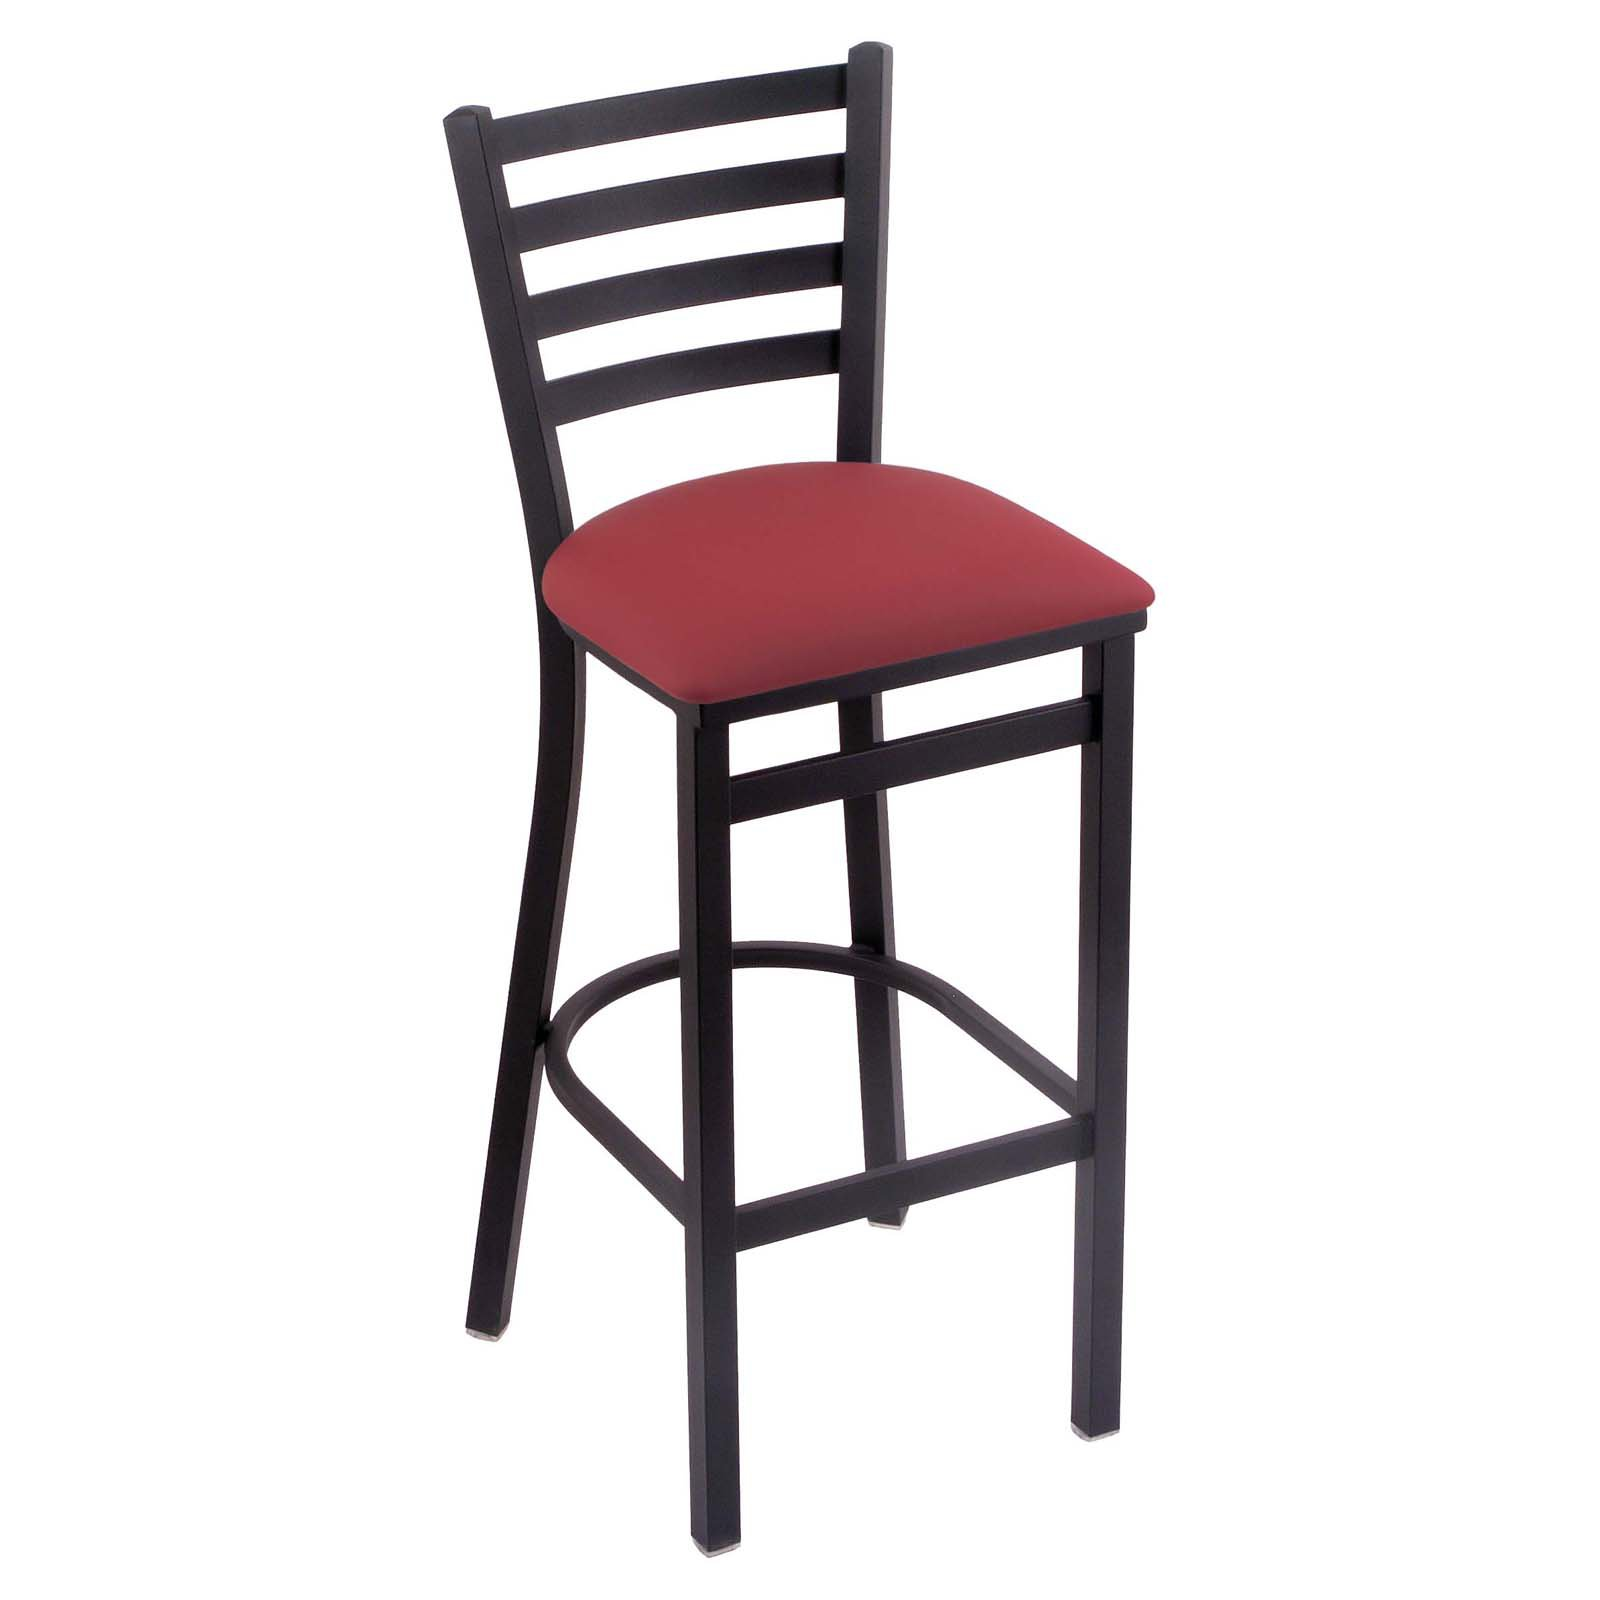 Holland Bar Stool Jackie 25 in. Counter Stool with Faux Leather Seat - Black Wrinkle